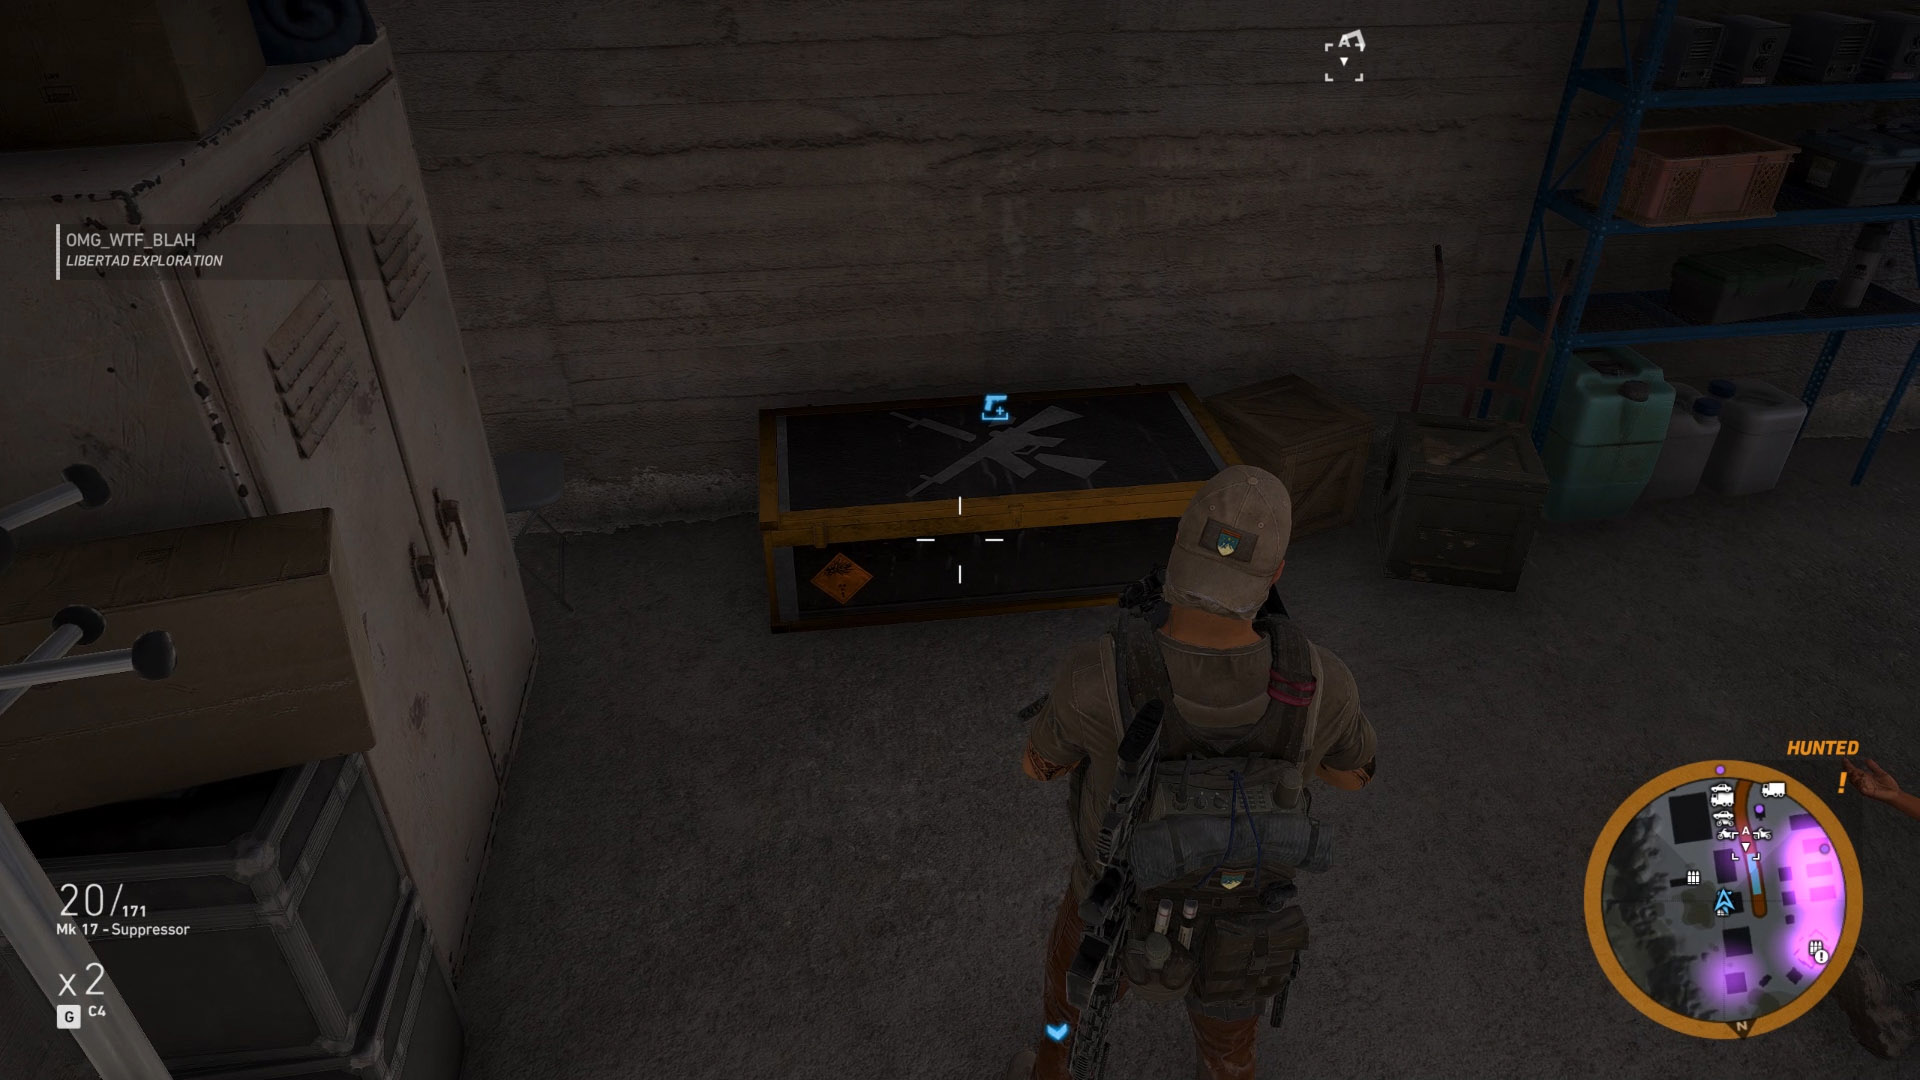 After flying in or fighting in from the east, enter the Armory and open the weapon crate to get the D-50 Desert Eagle, Ghost Recon Wildlands' best pistol.